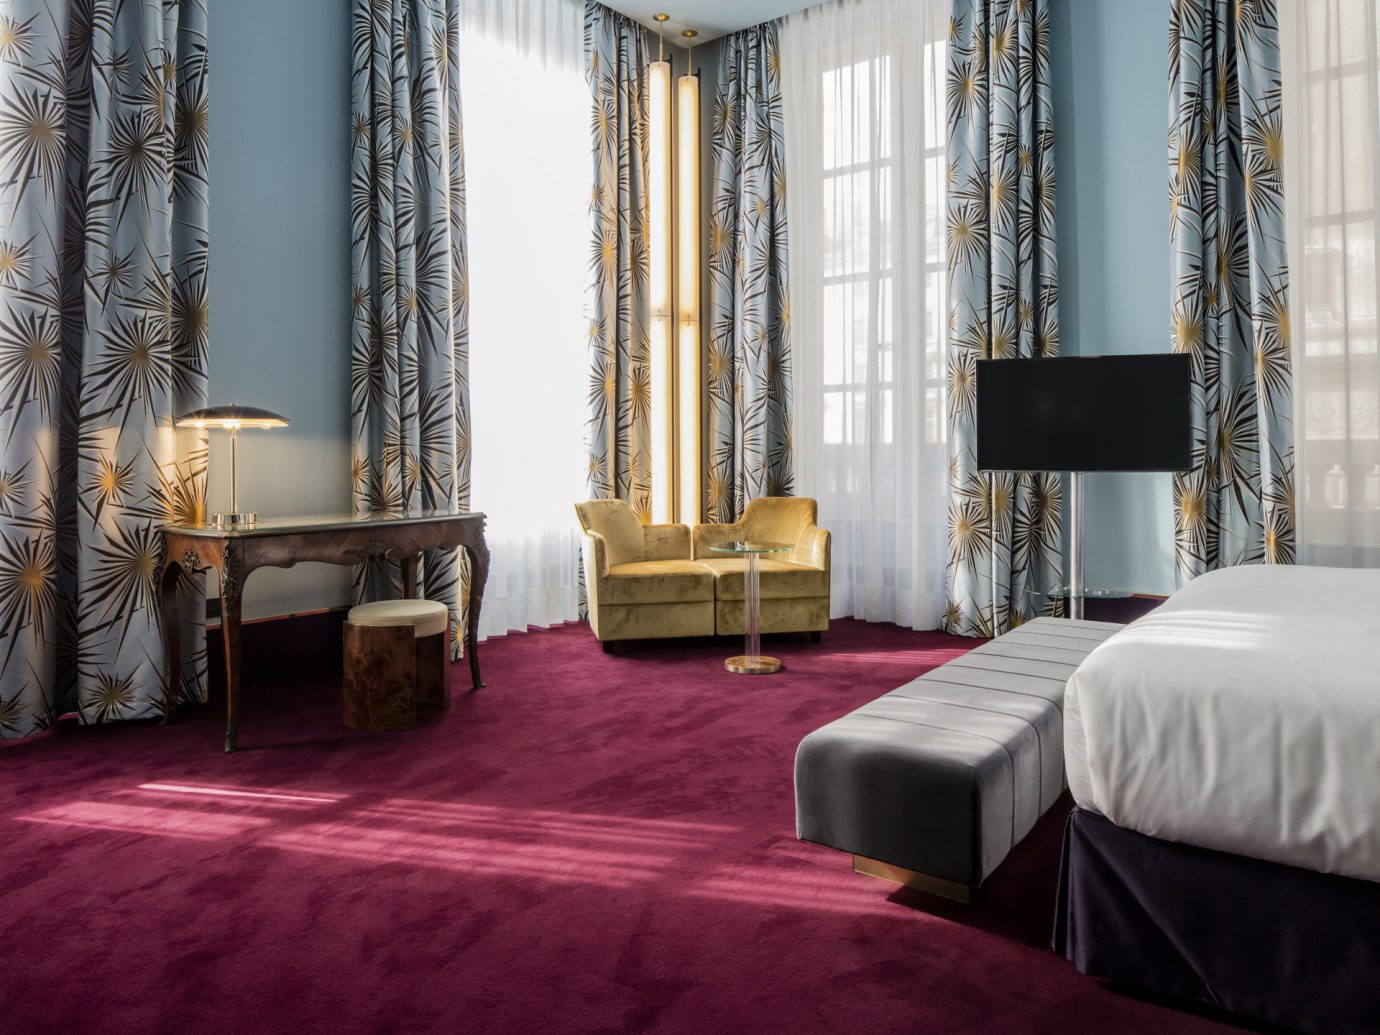 artistic artsy Boutique Hotels Hotels Style + Design stylish bed indoor room floor property Bedroom hotel interior design living room curtain flooring home Suite estate textile Design window covering window treatment